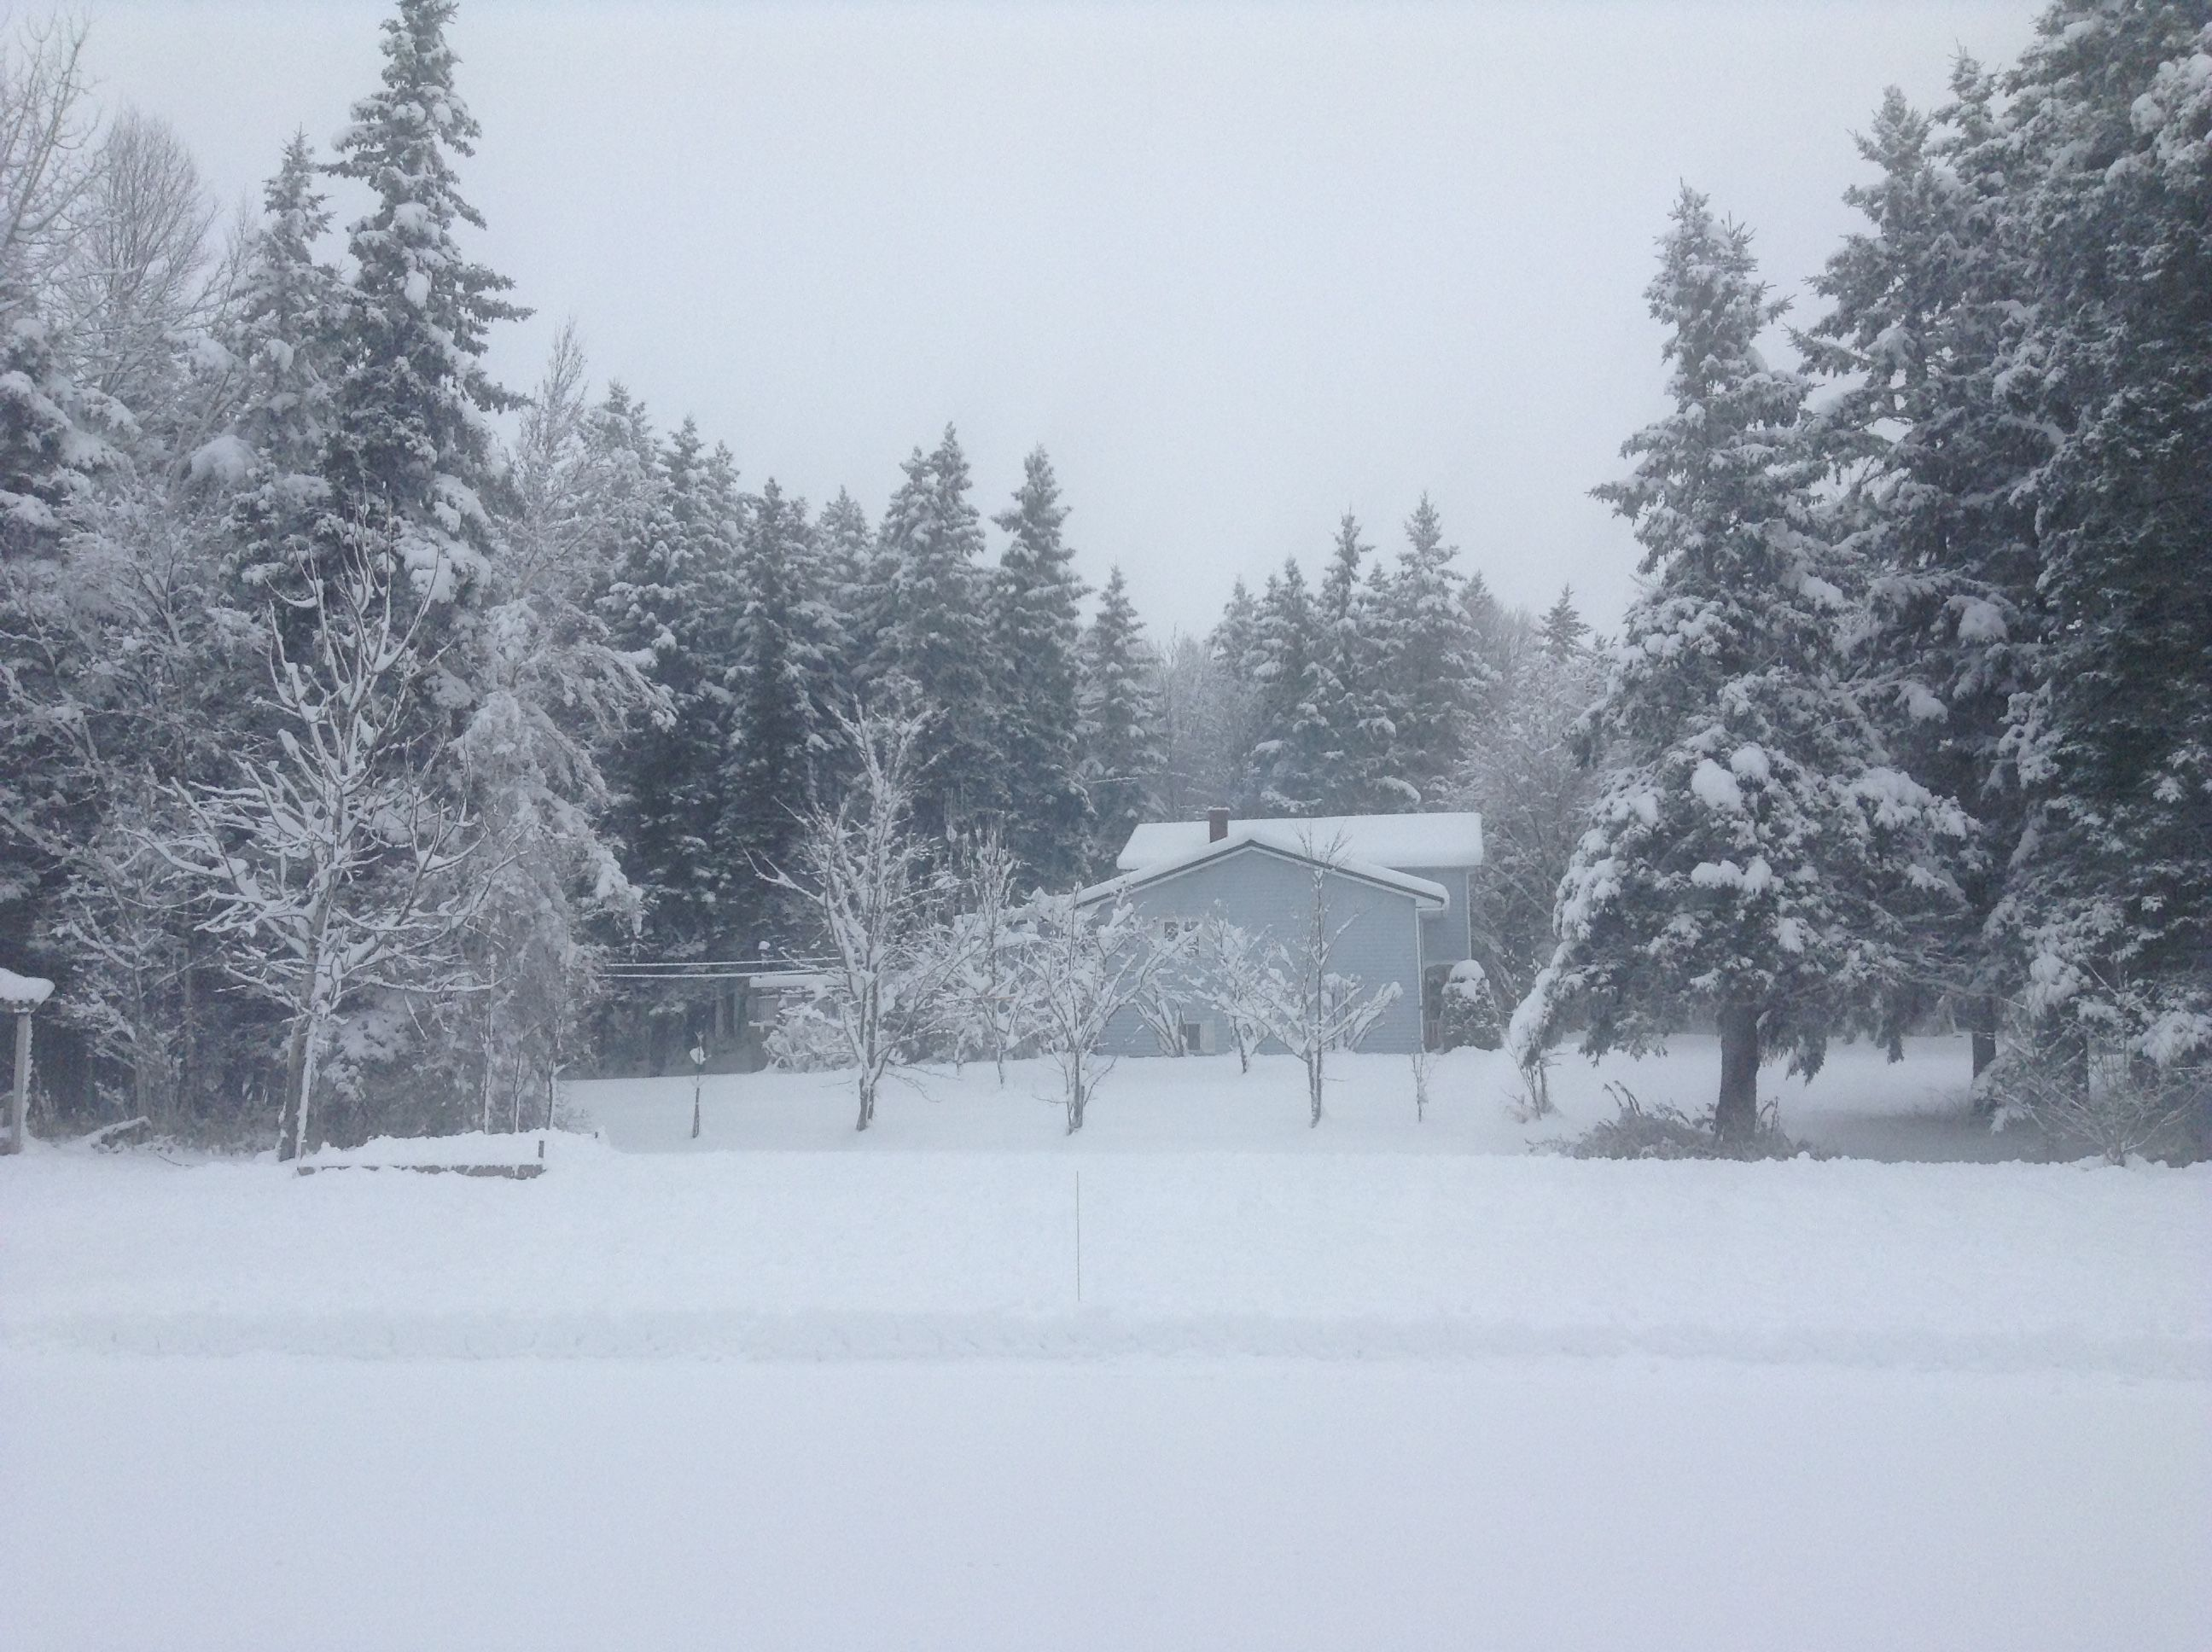 Moncton first snowstorm of the 2016-2017 winter season